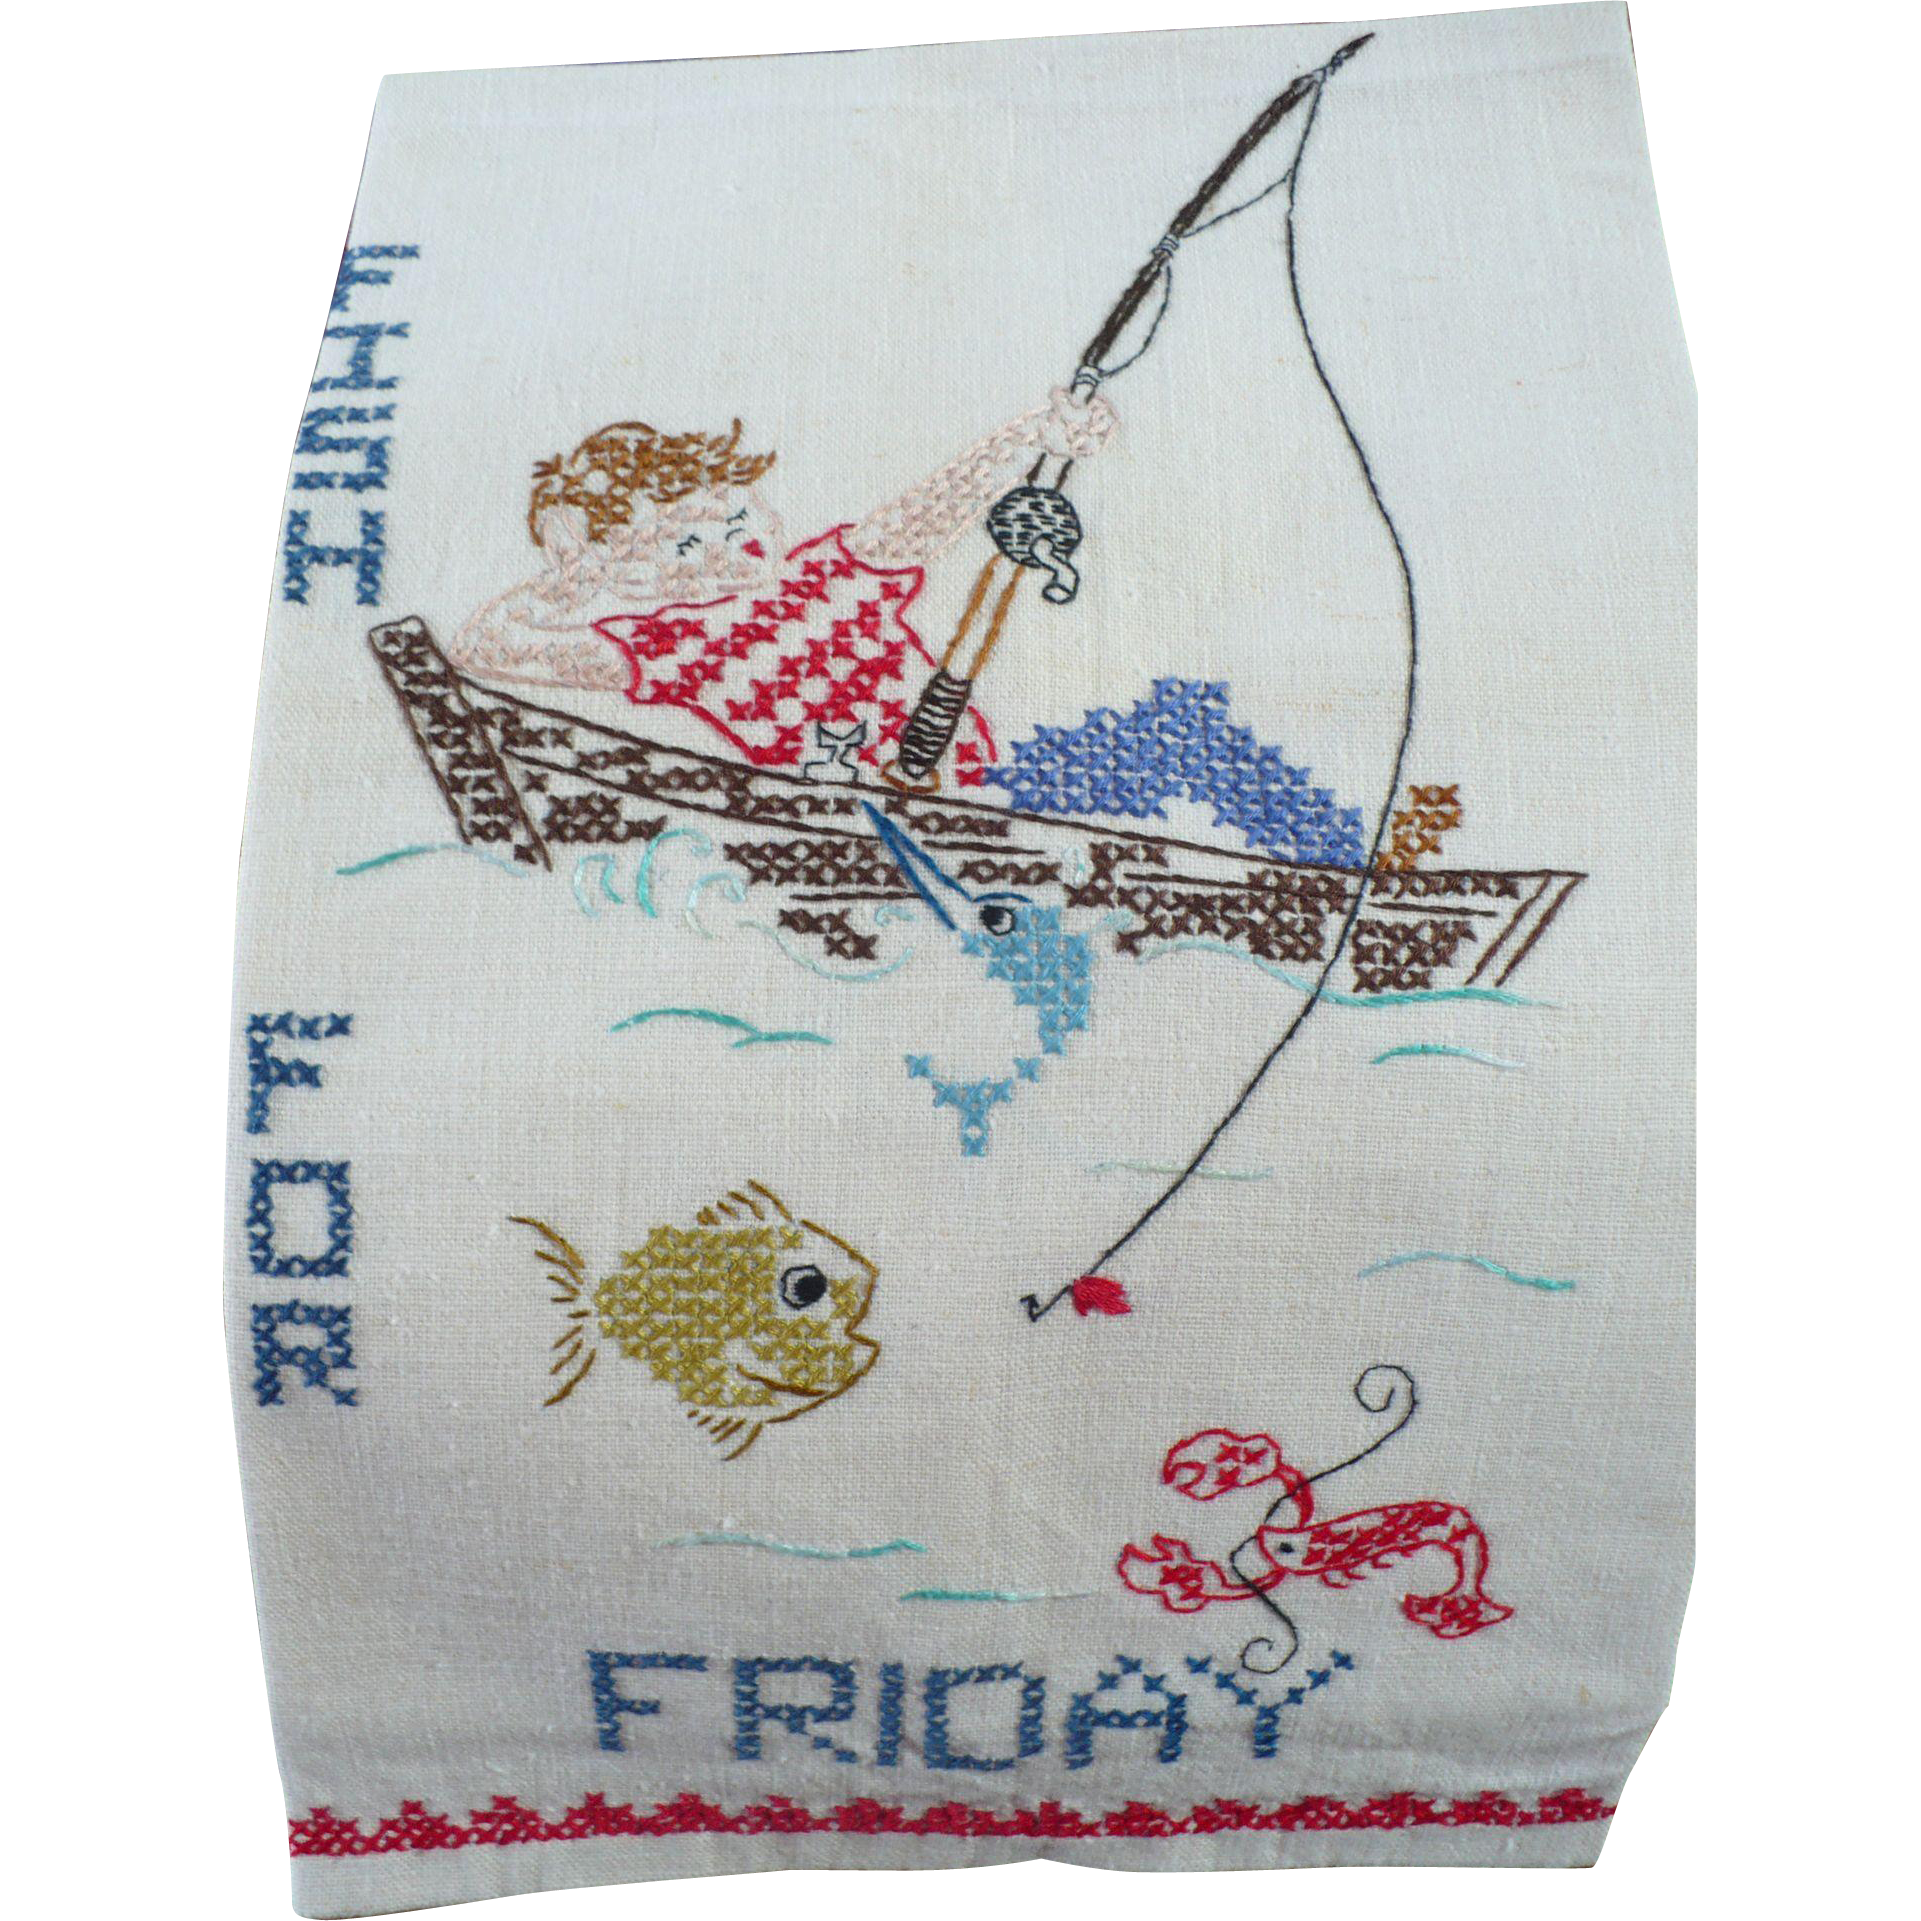 Friday Fishing Embroidered Towel From Looluus On Ruby Lane